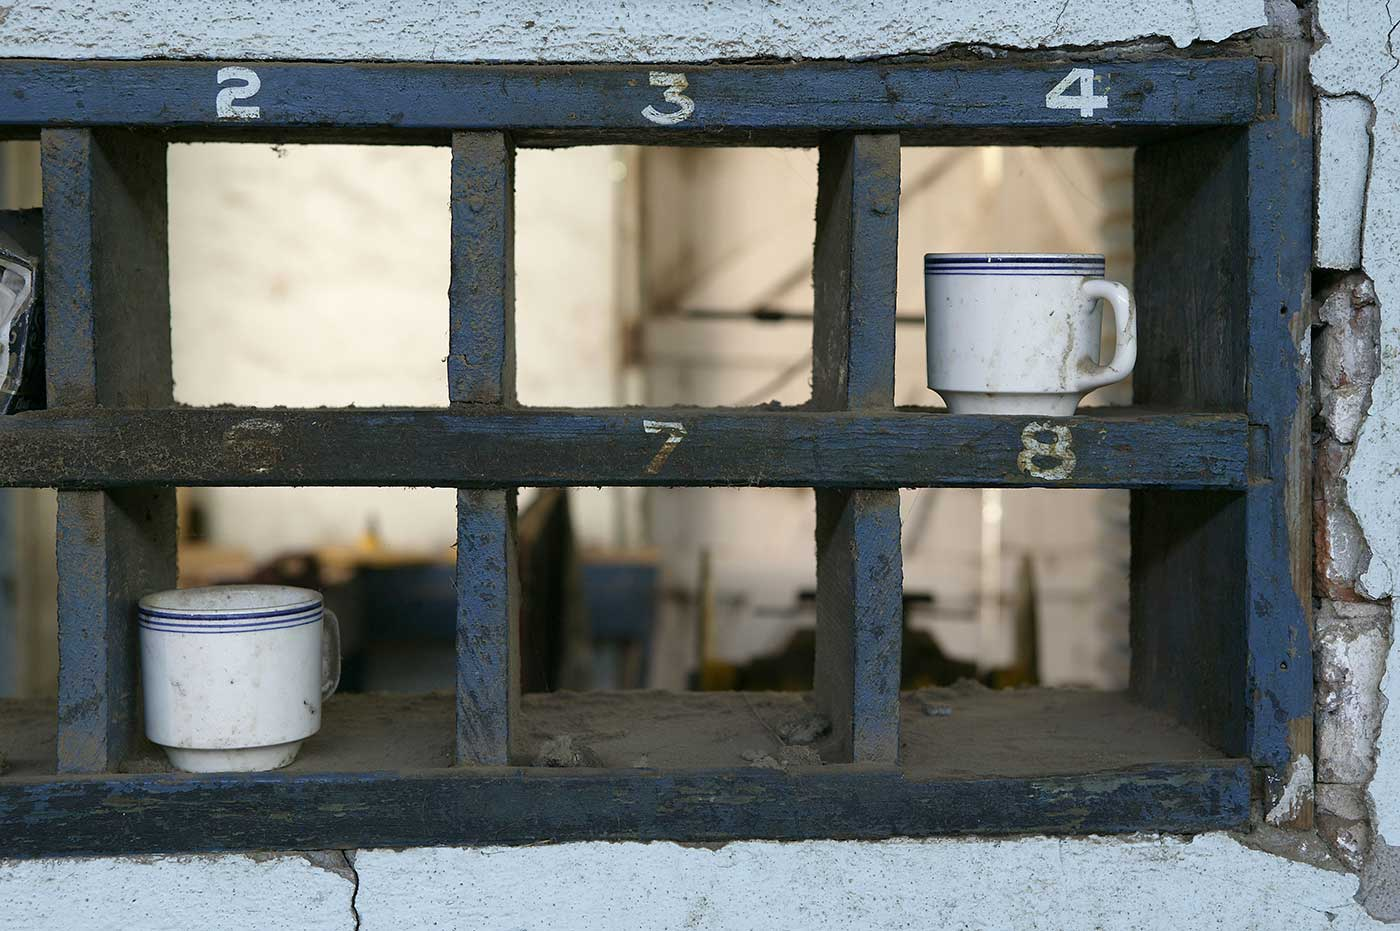 Numbered wooden shelves for drinking cups. - click to view larger image